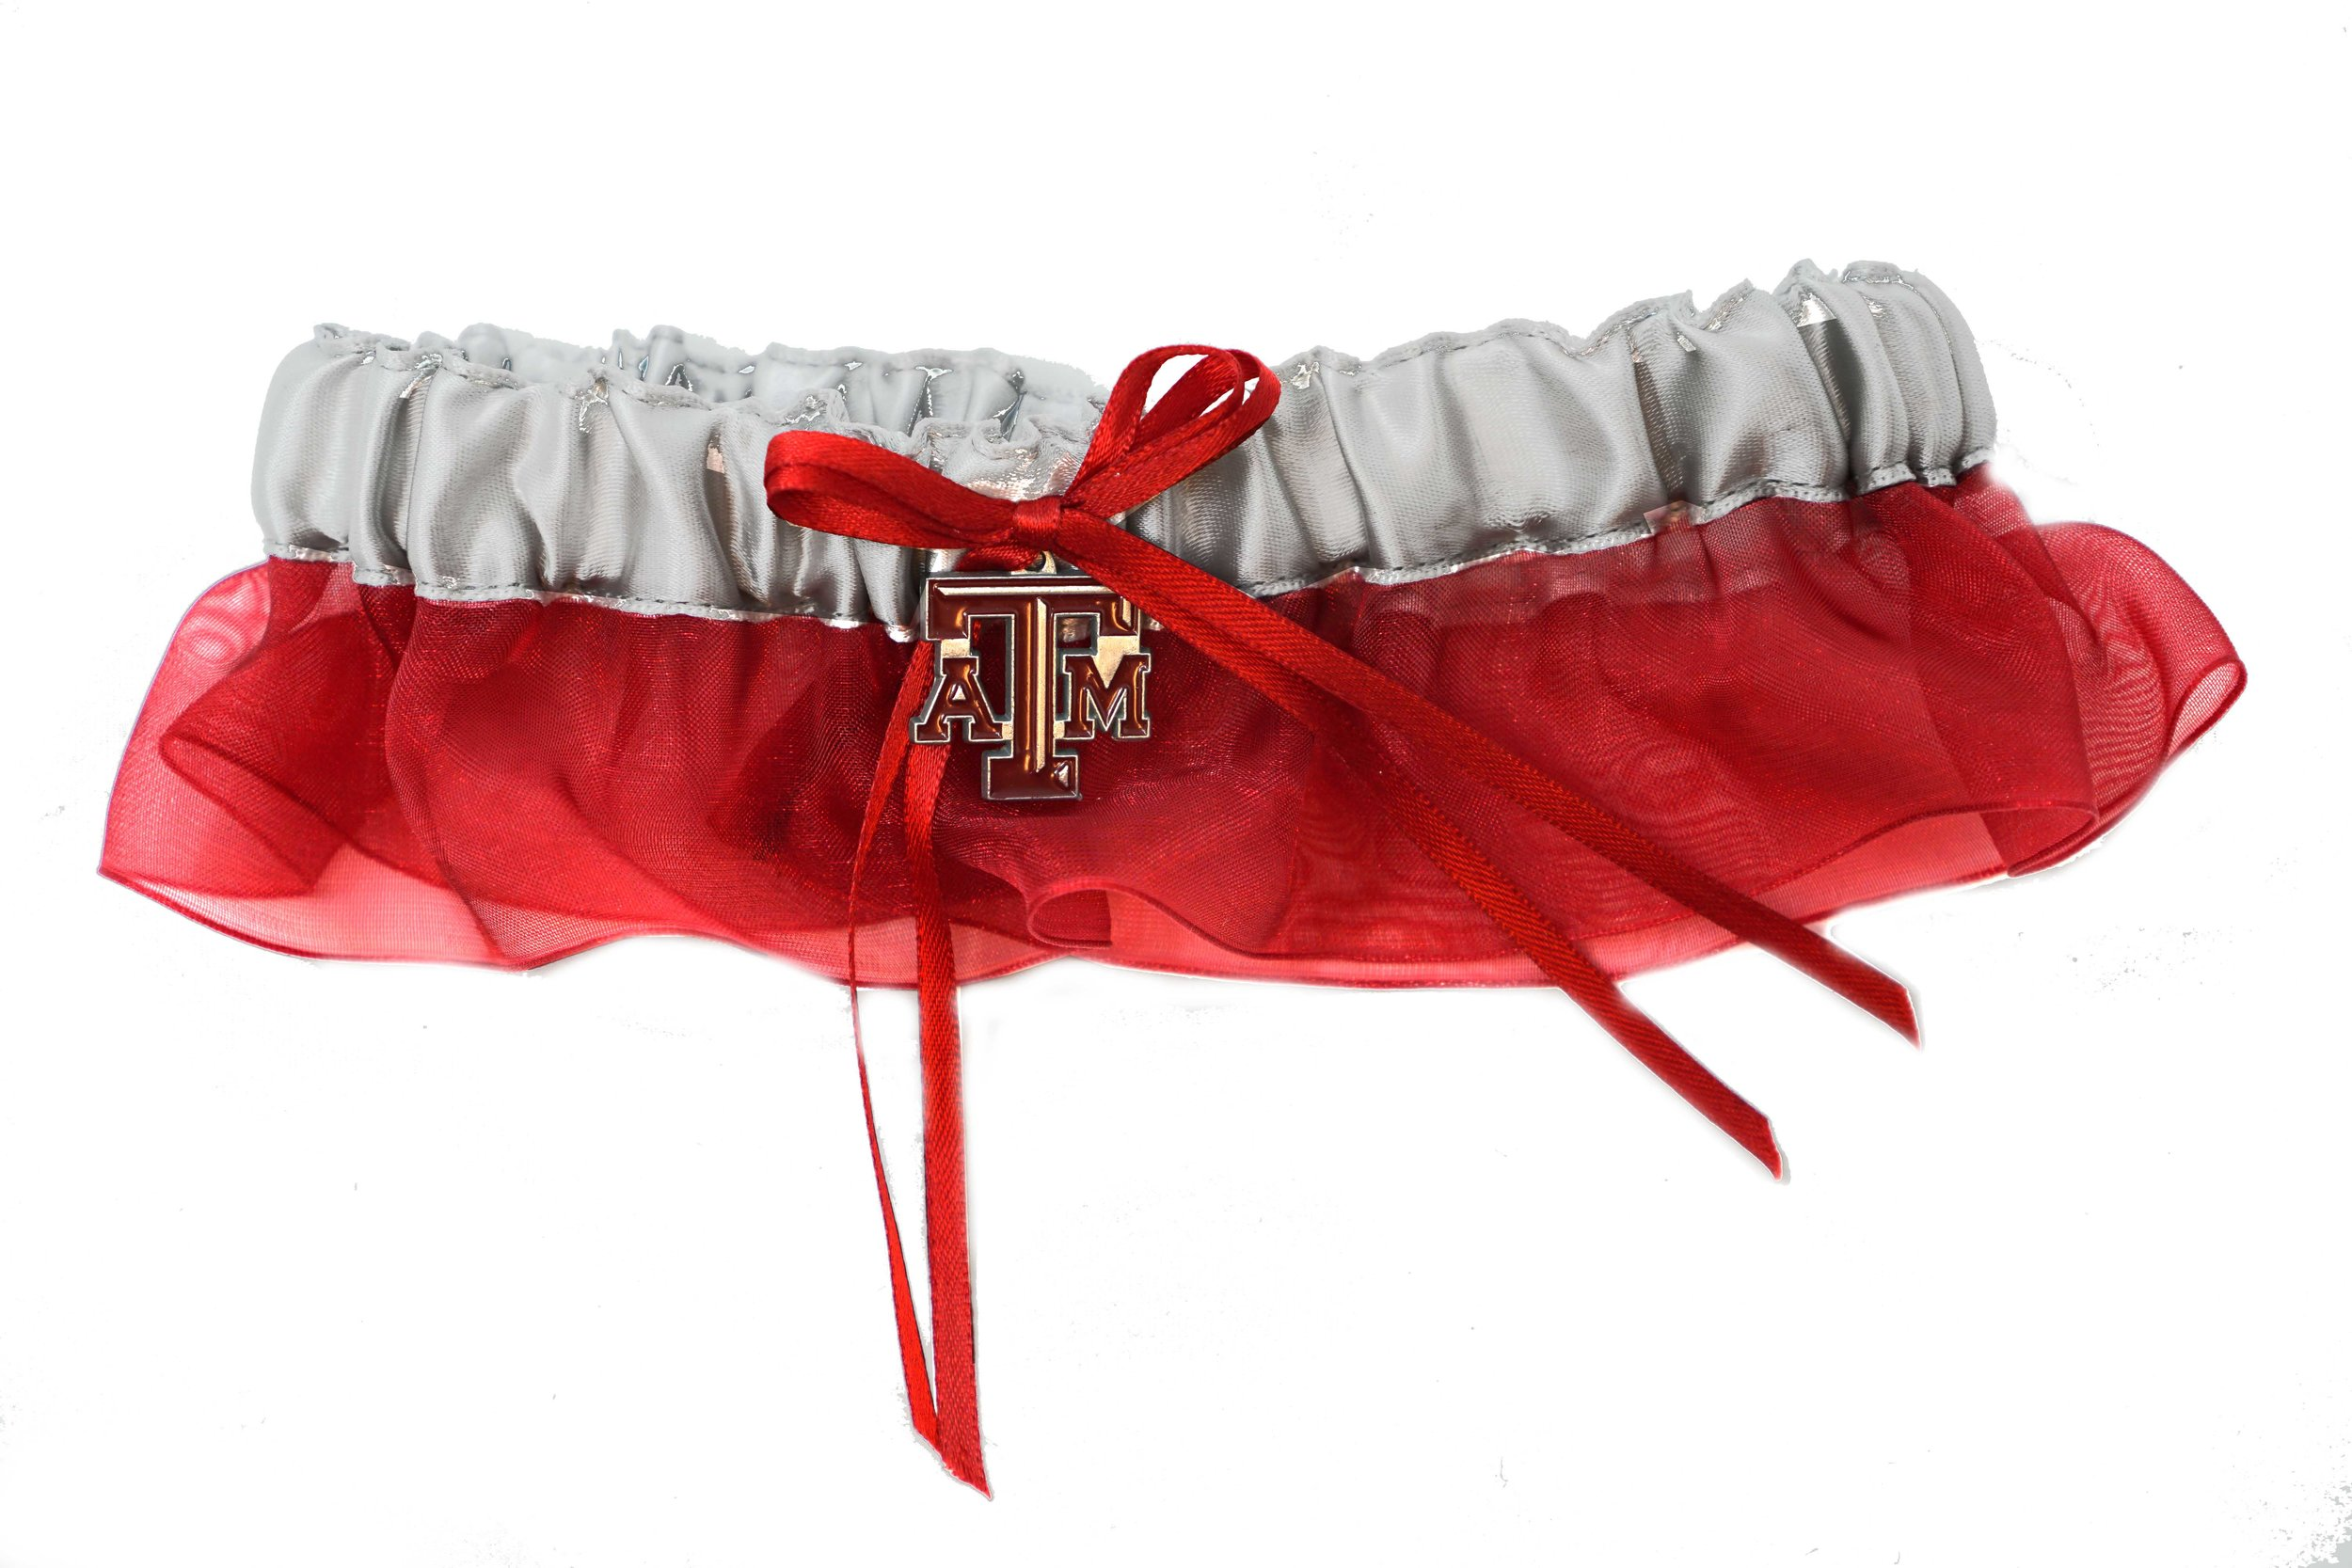 3 Texas A&M Bridal Garter_1 copy.jpg